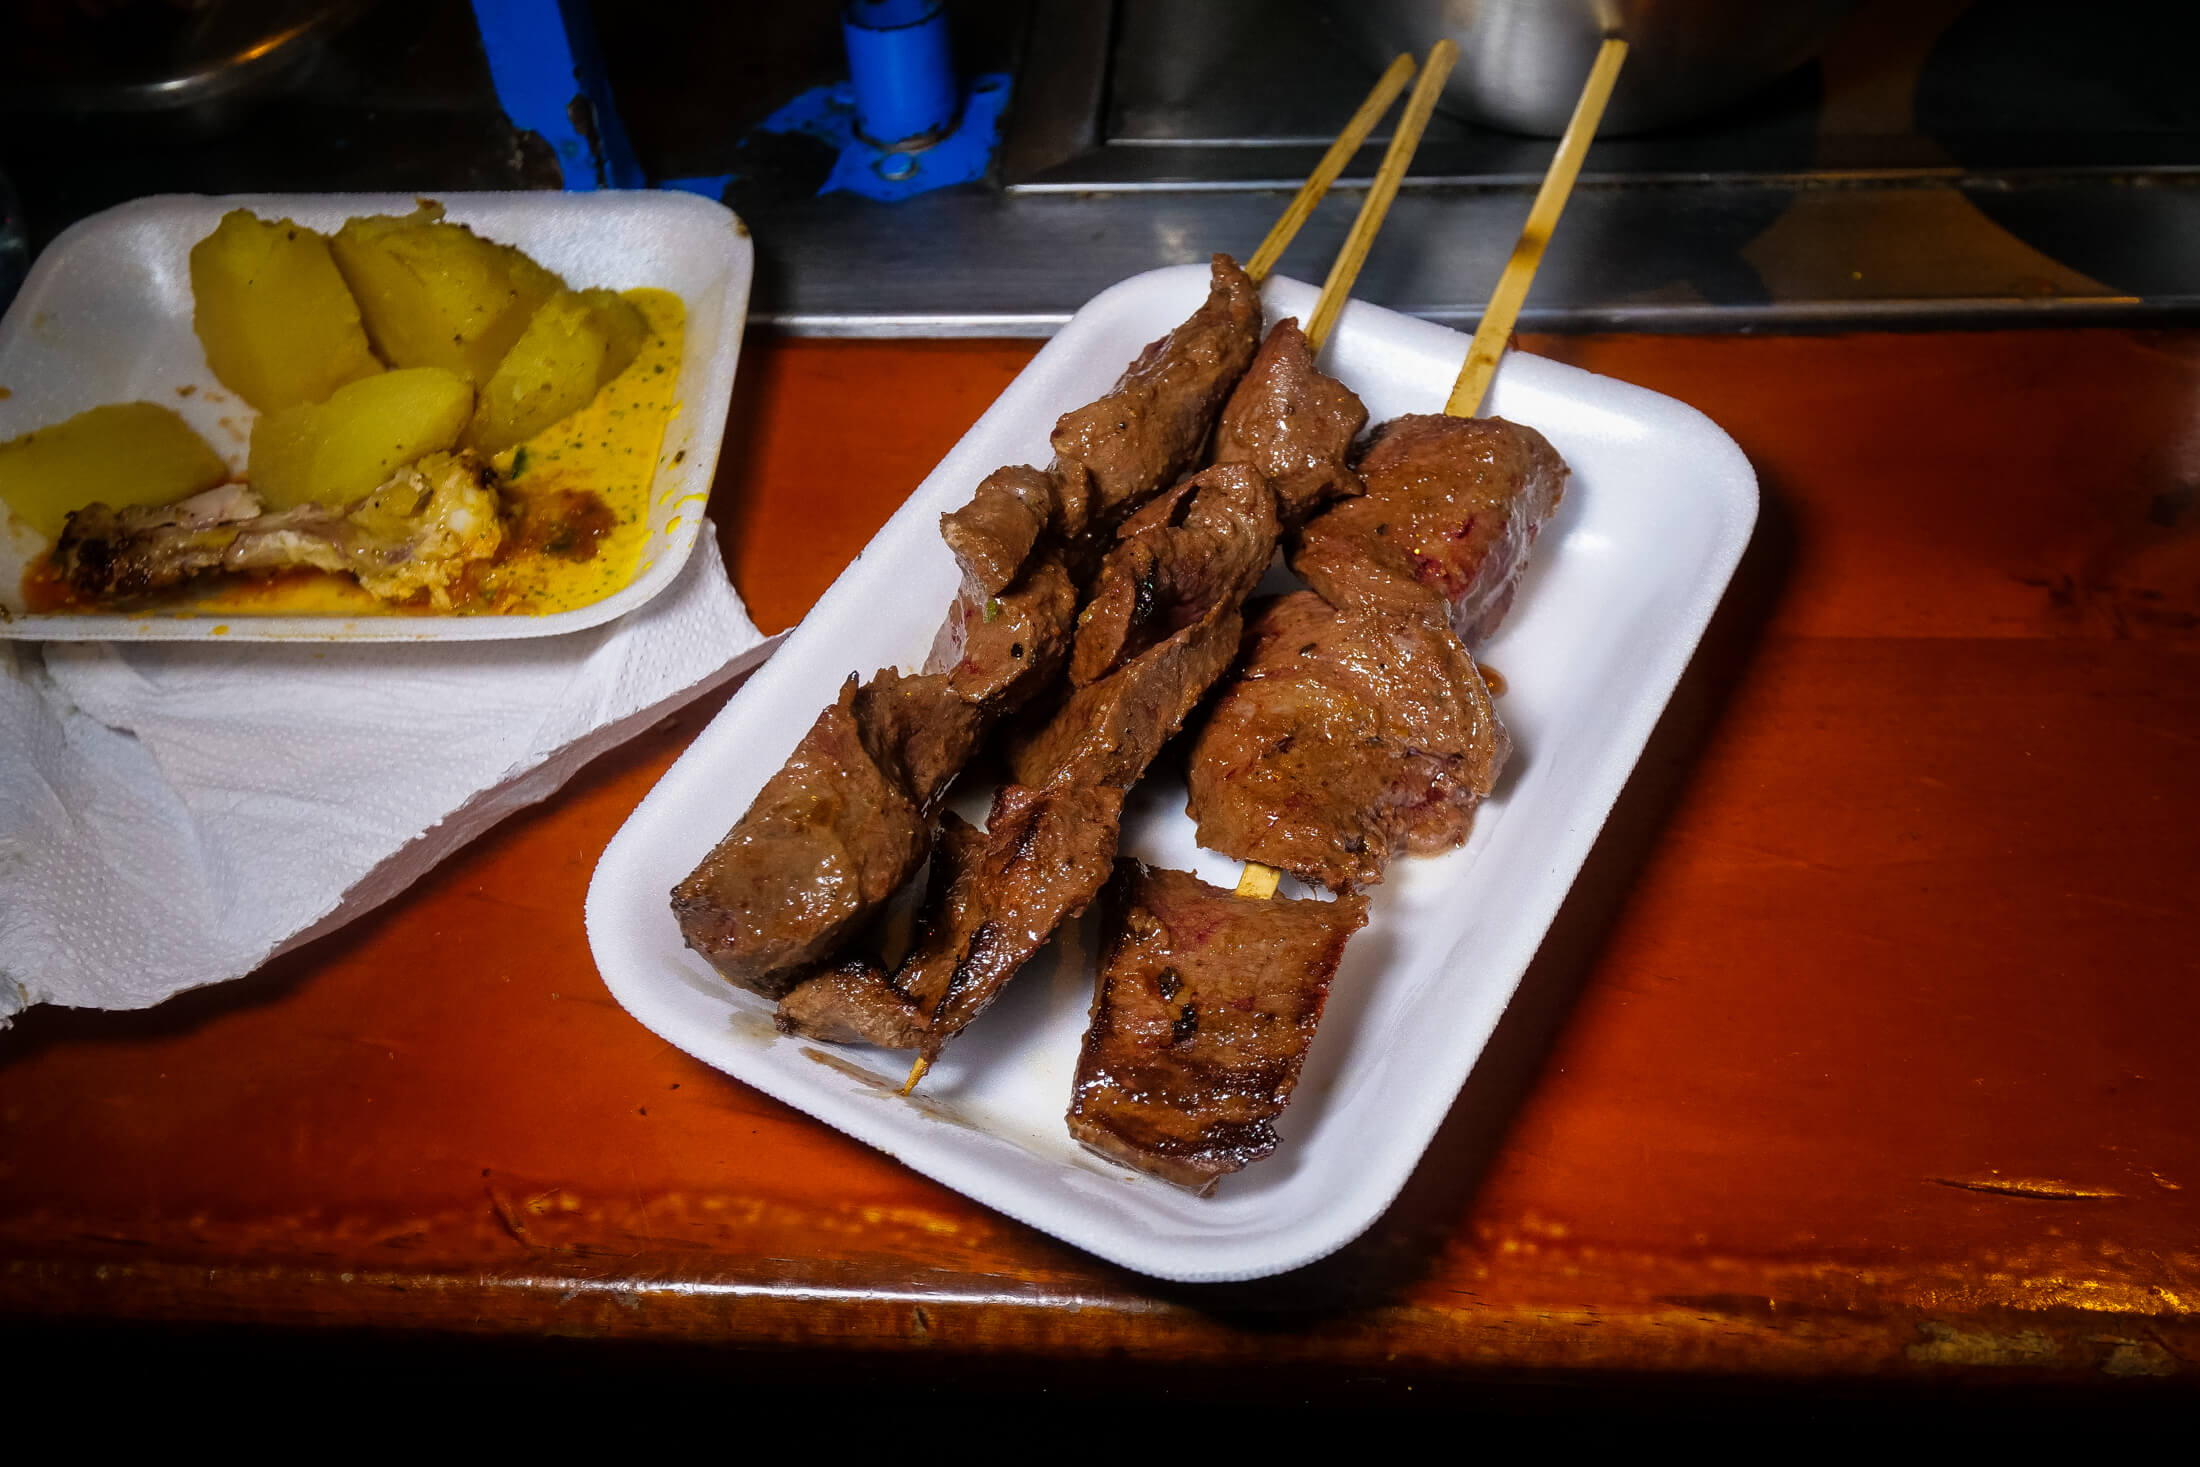 delicious bites of beef in Anticuchos.